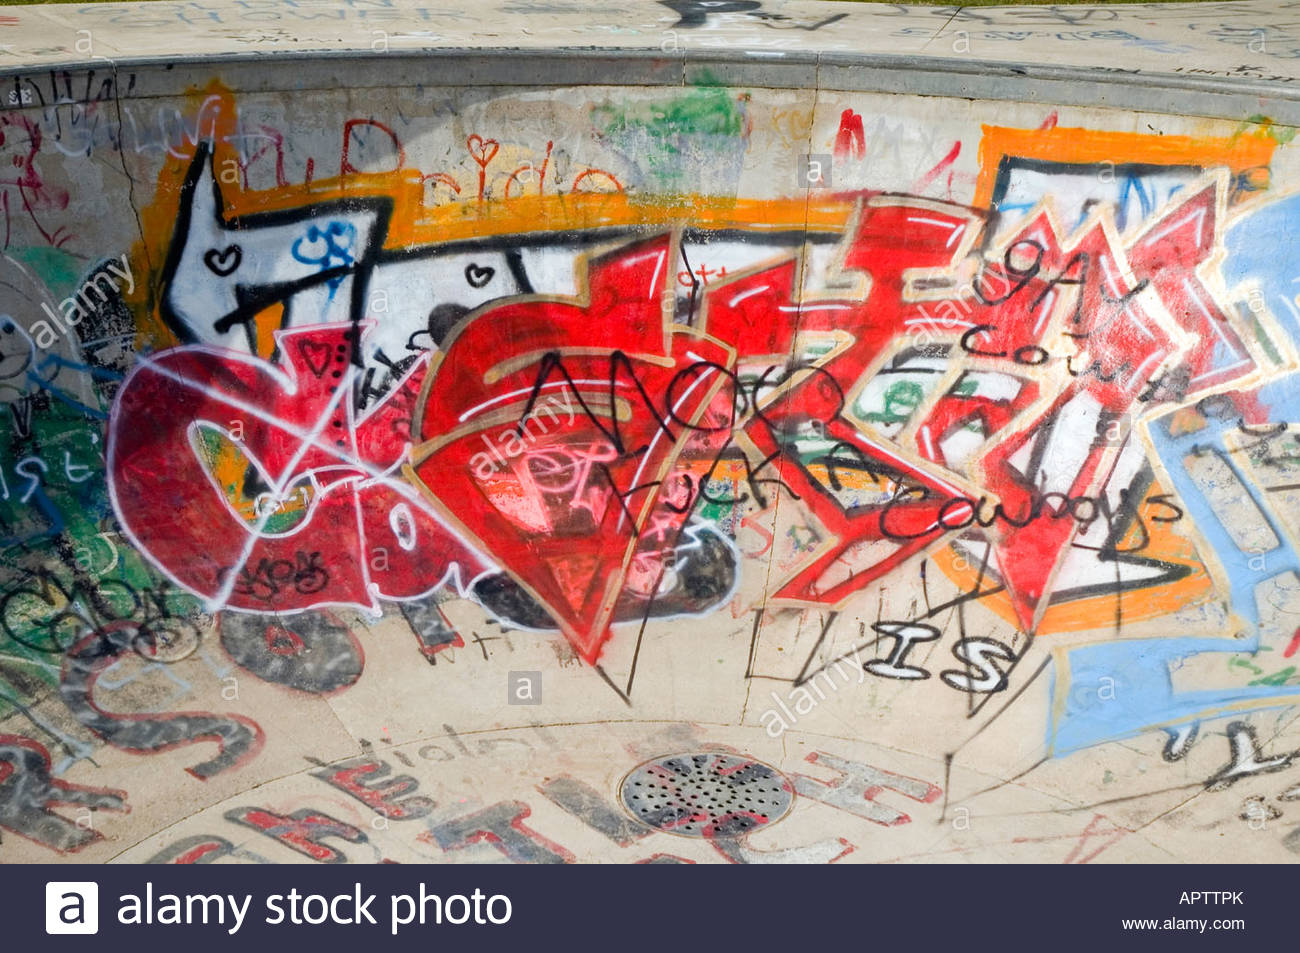 Graffiti on a skate park concrete wall stock photo 15863946 alamy graffiti on a skate park concrete wall thecheapjerseys Gallery